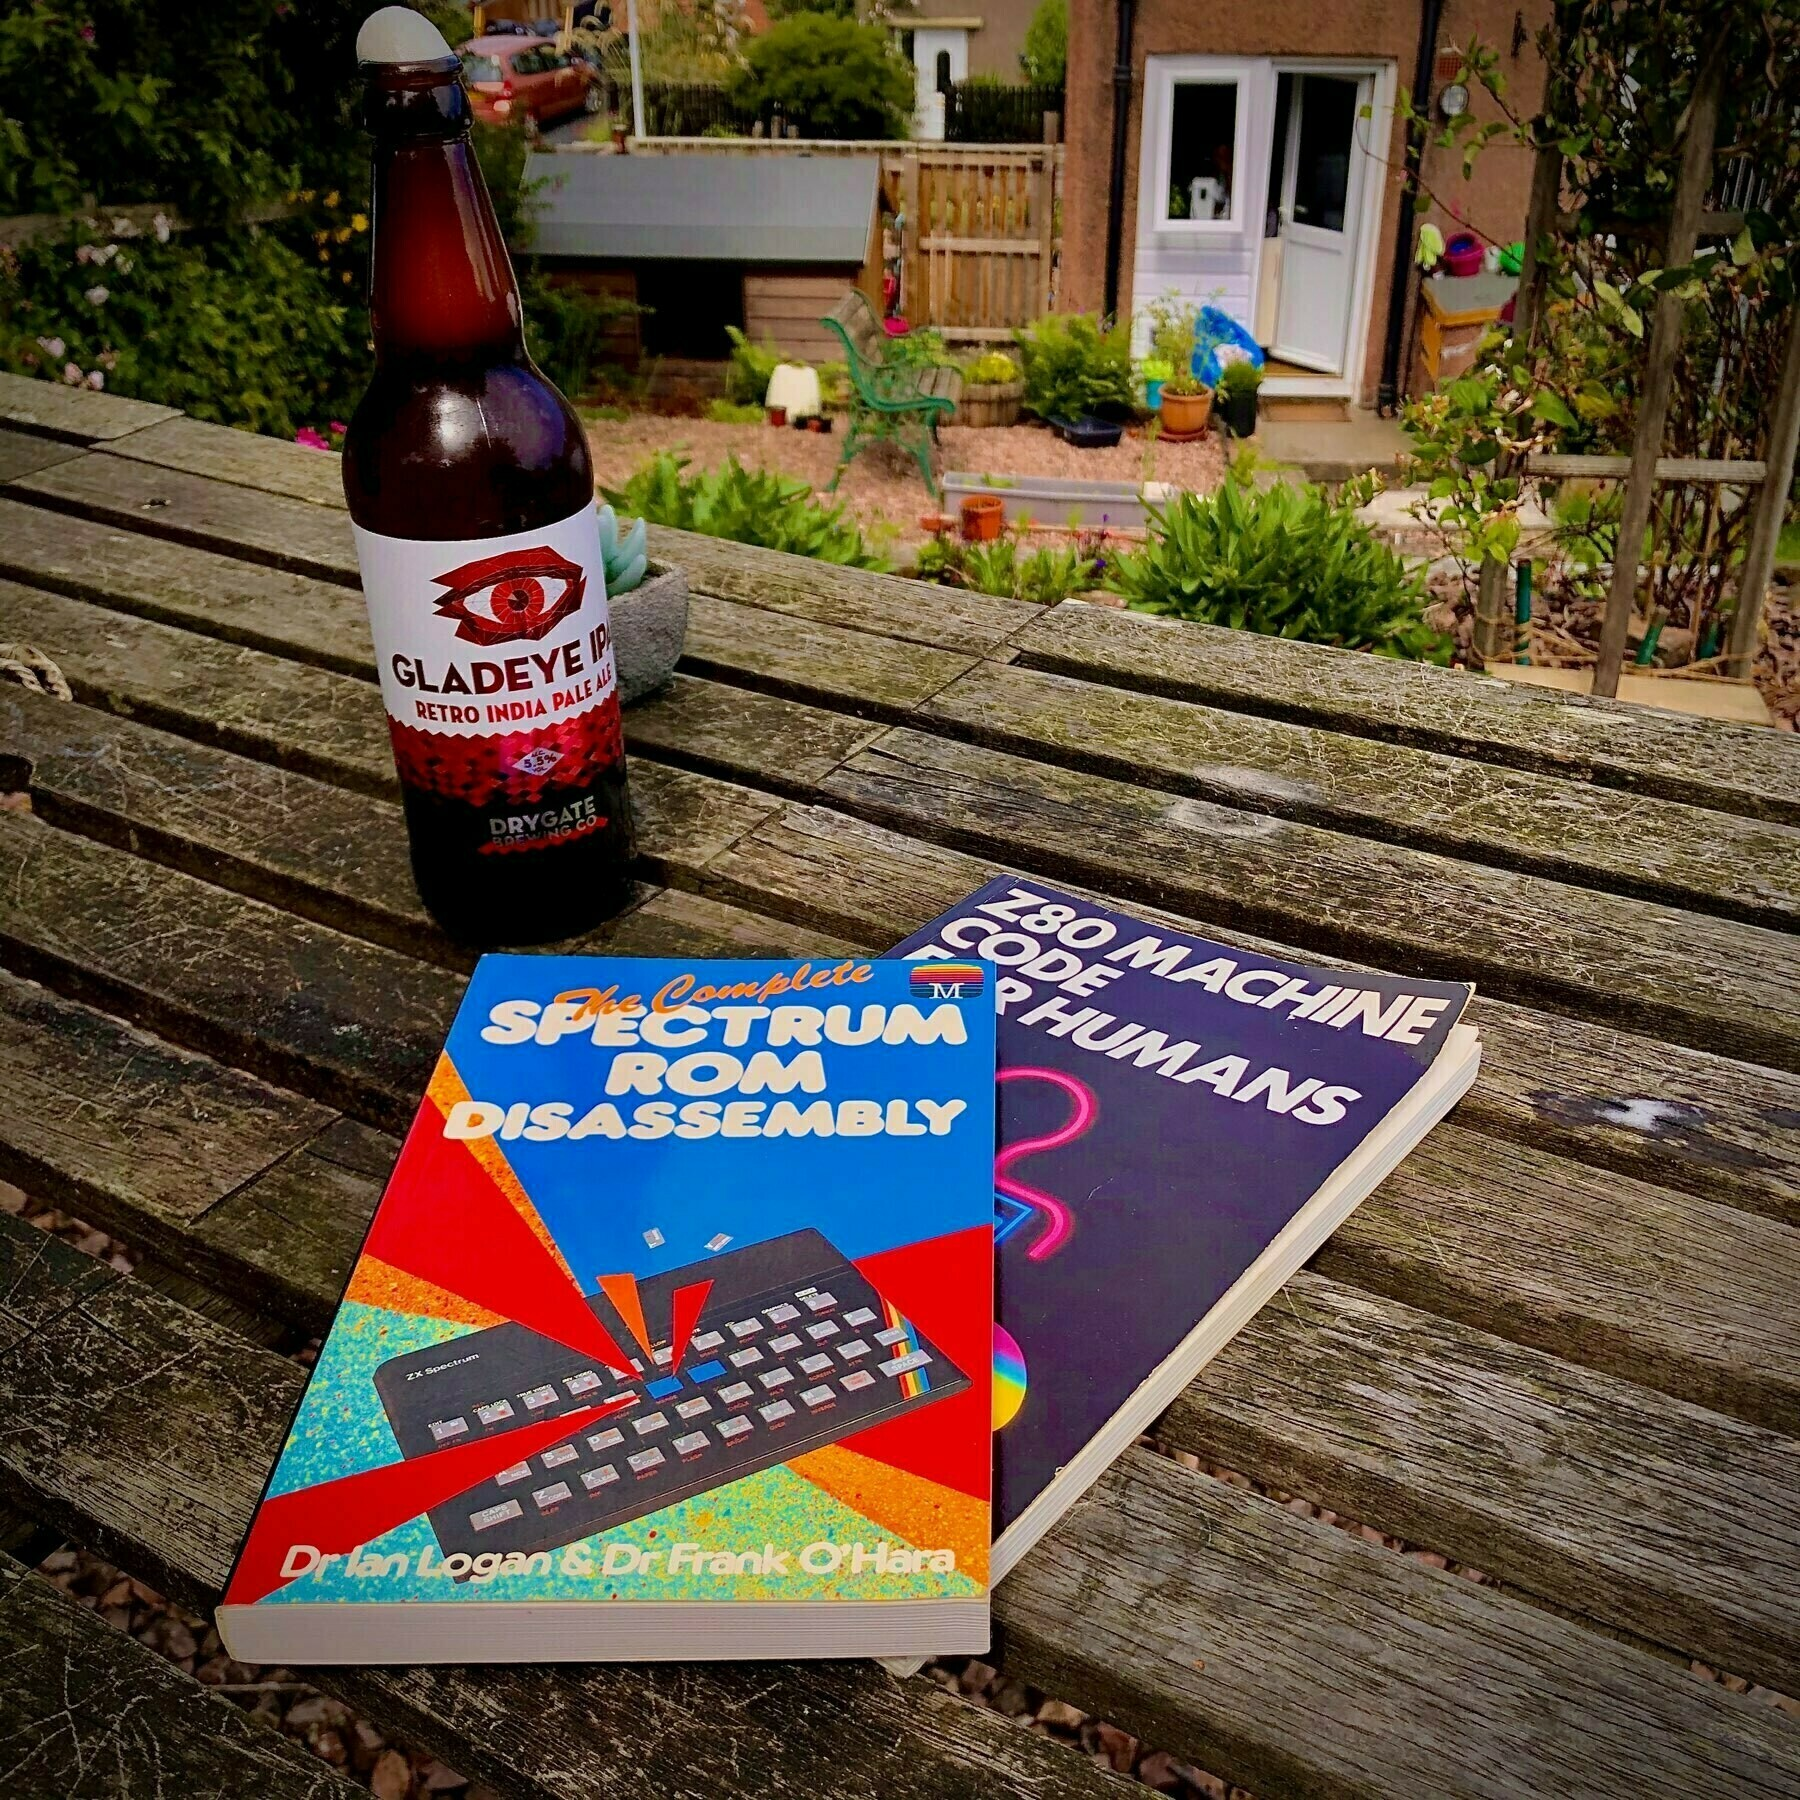 Bottle: Drygate Gladeye Retro IPA; Books: Z80 Machine Code for Humans, and The Complete Spectrum ROM Disassembly